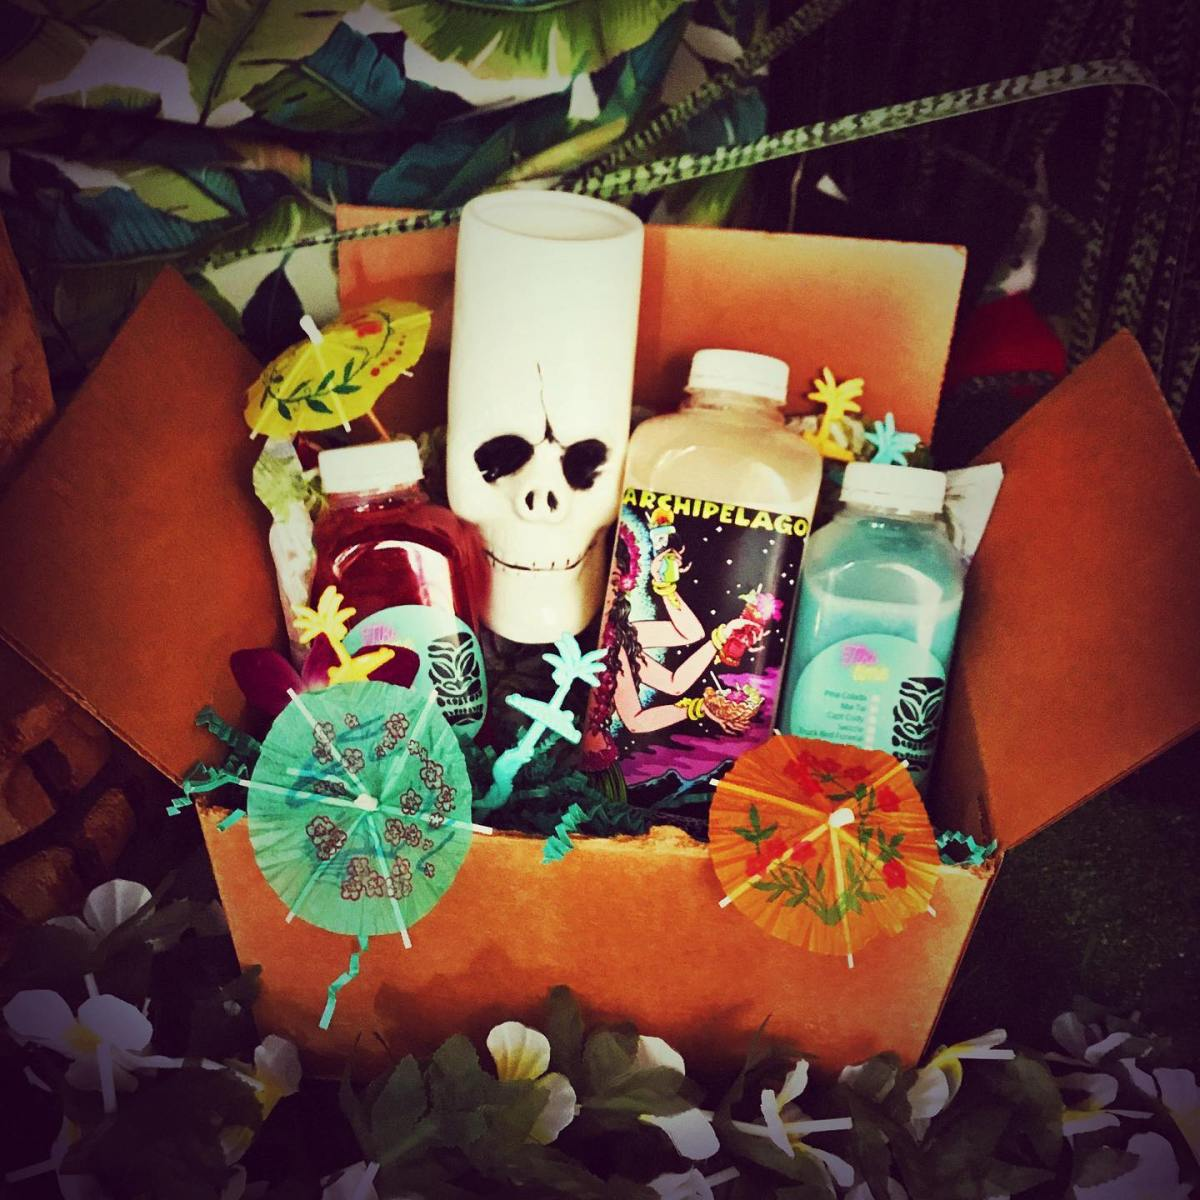 Box of tiki drinks from Archipelago